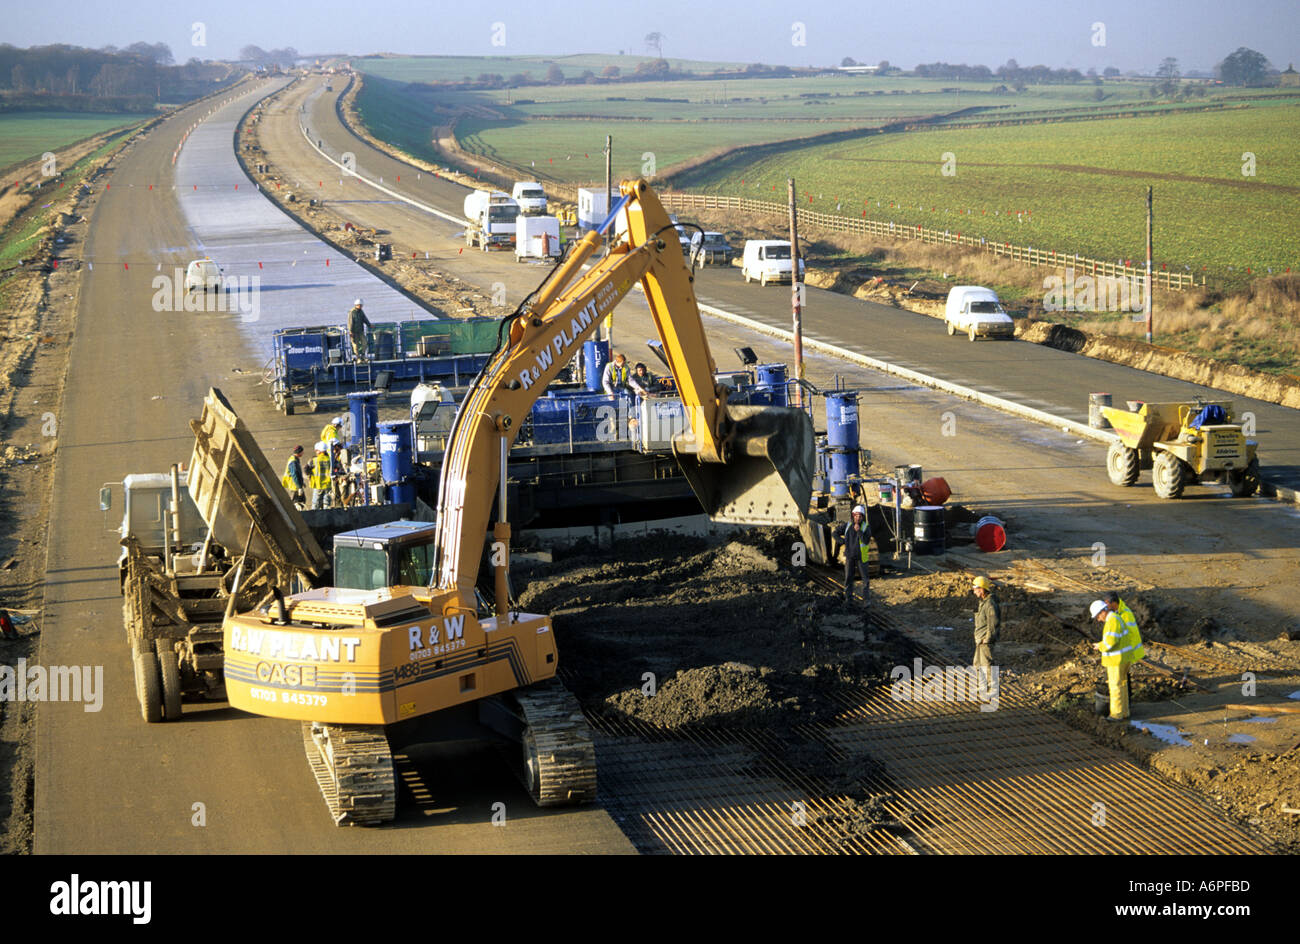 WA National News - Page 2 Road-construction-machinery-and-workers-building-a1-m1-link-road-leeds-A6PFBD